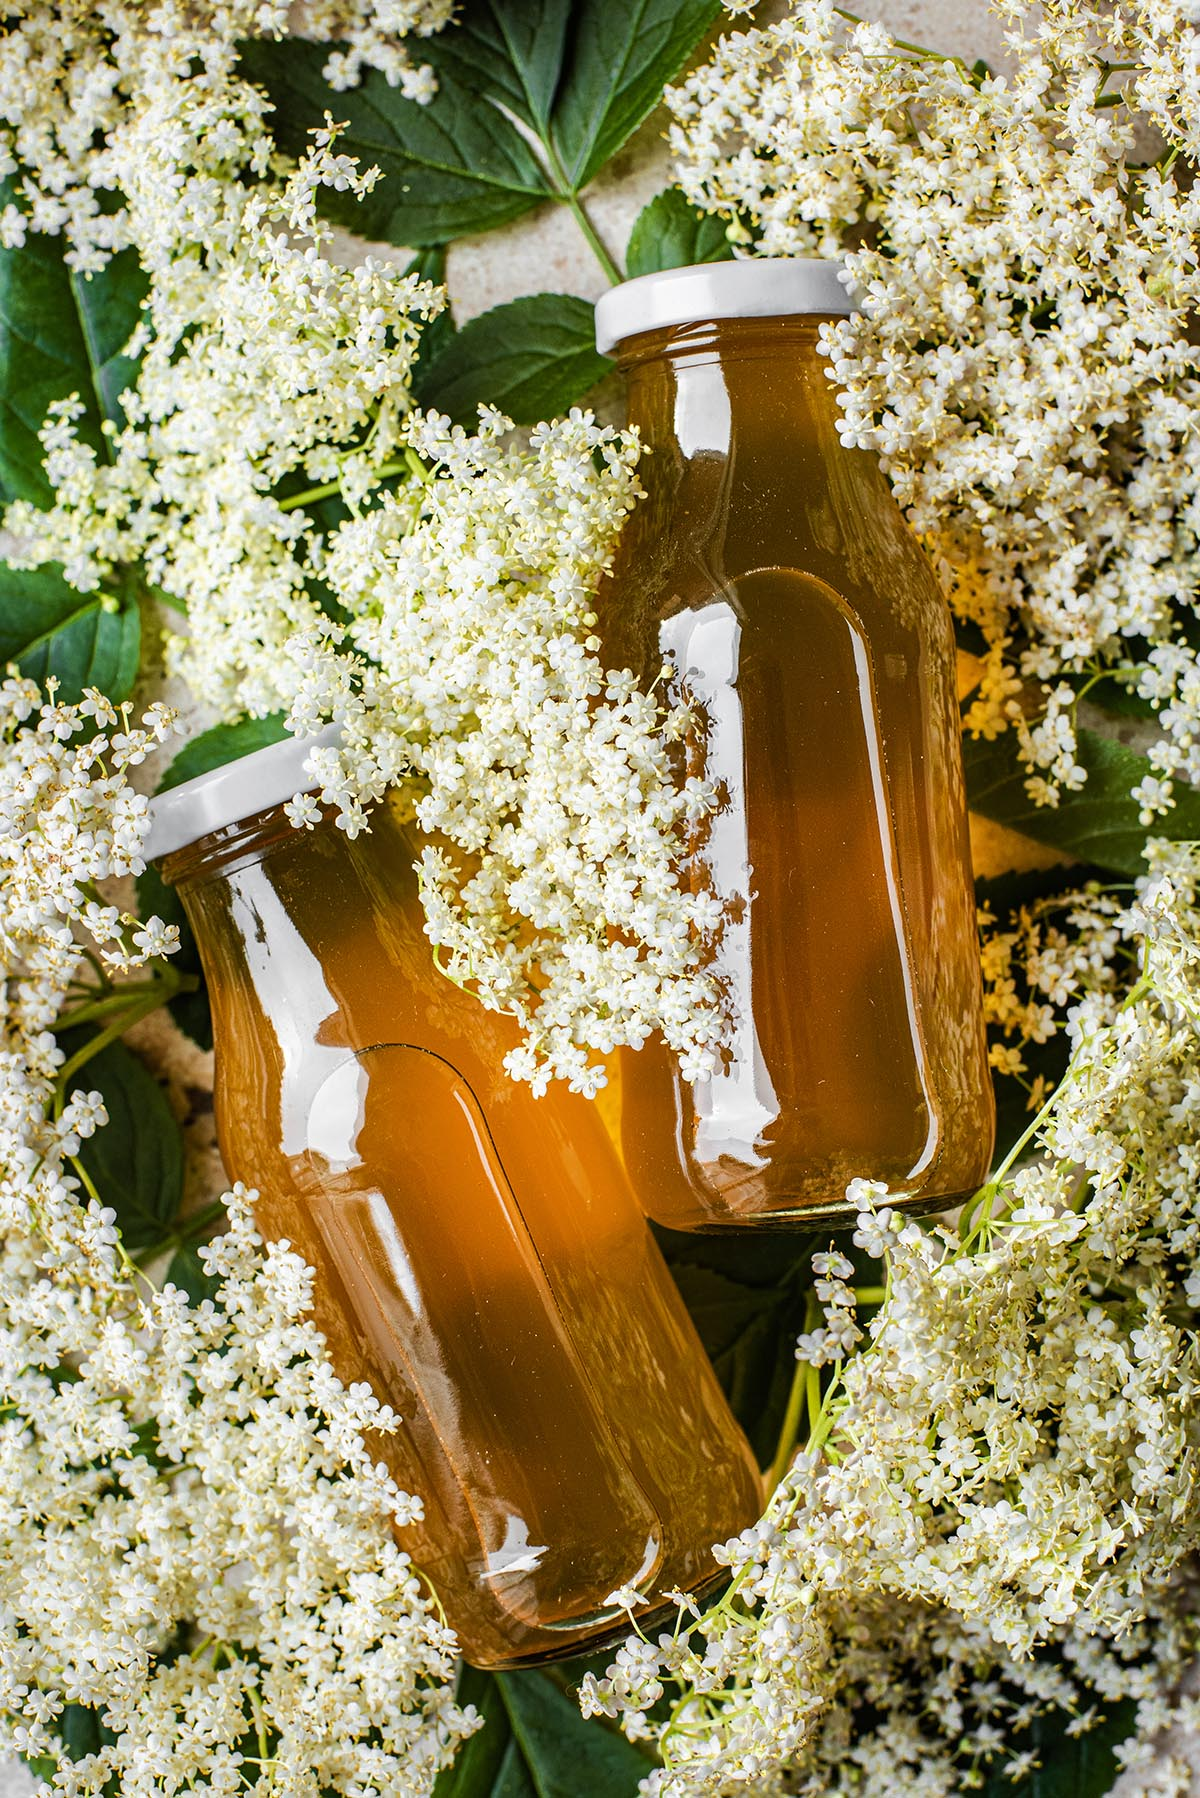 Two small glass bottles of elderflower cordial lying in several elderflower heads.